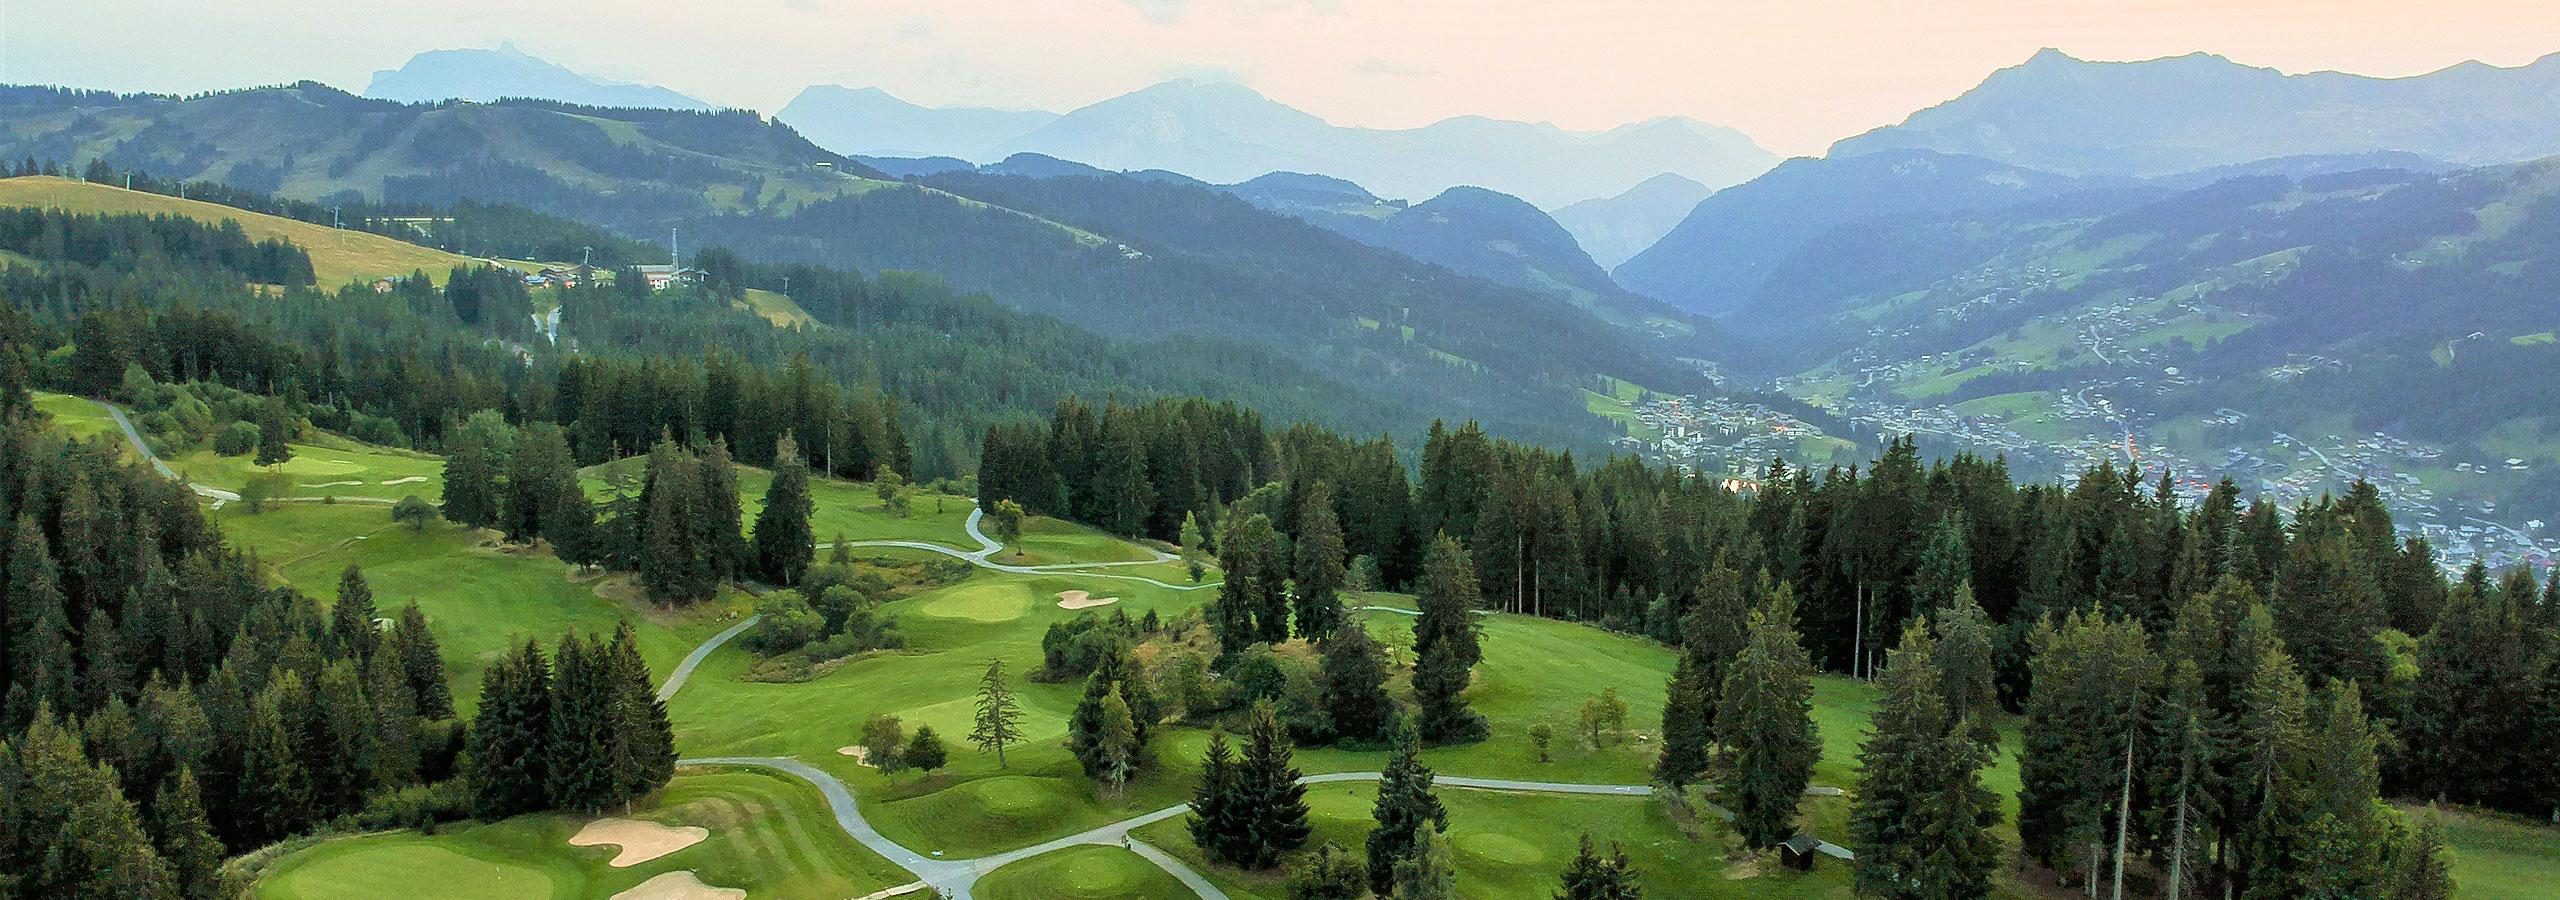 Lesgets Scenery Golf Course